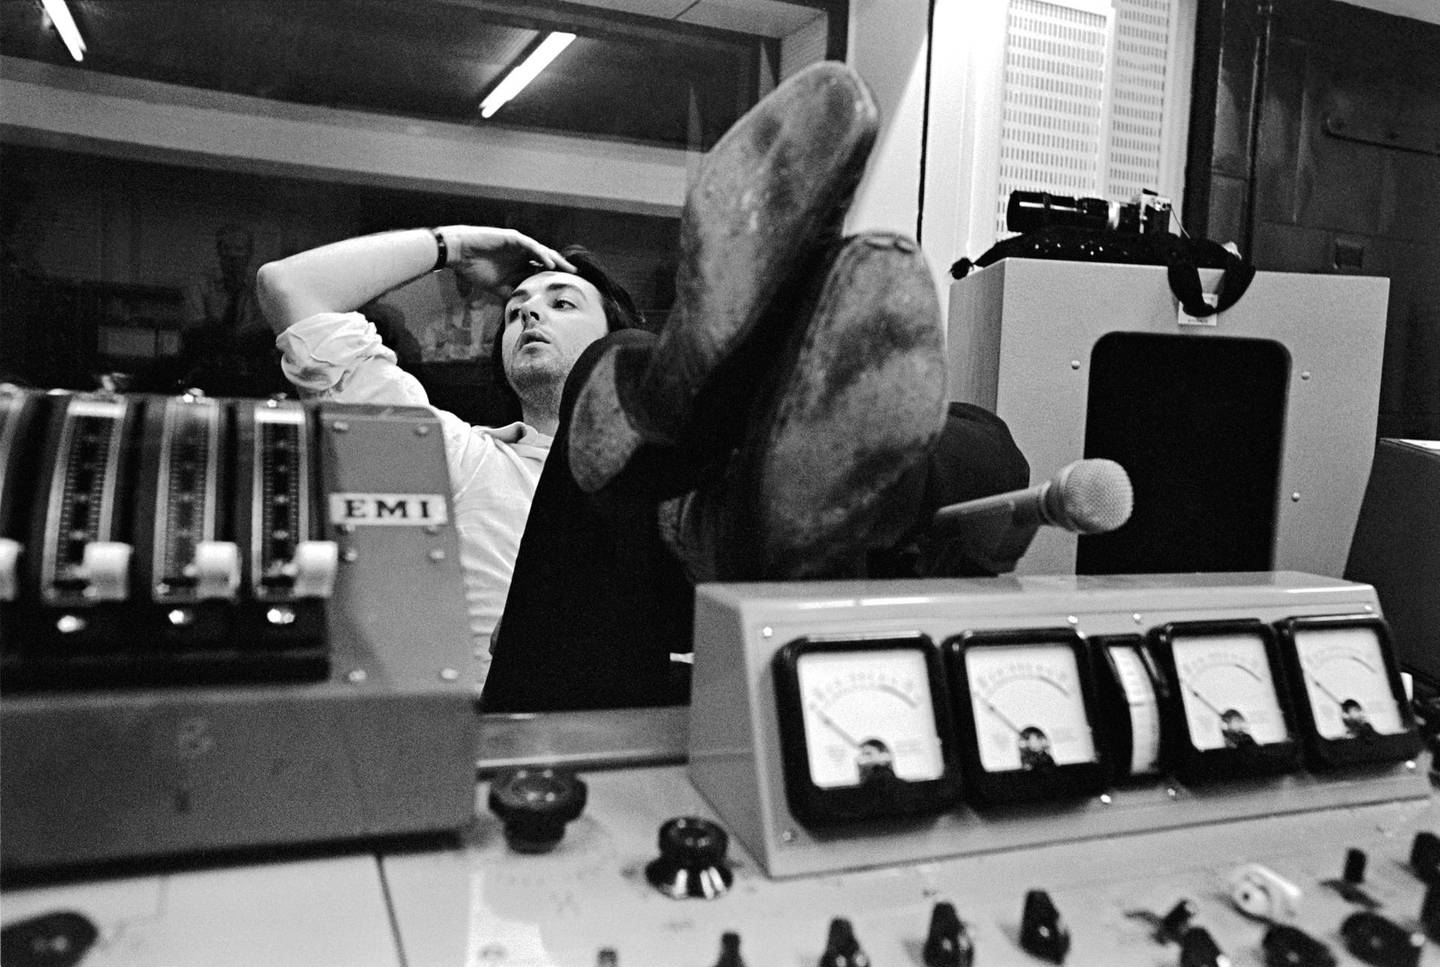 Paul McCartney during a recording session for The Beatles. Abbey Road Studios. October 1968Credit: �� Apple Corps Ltd.